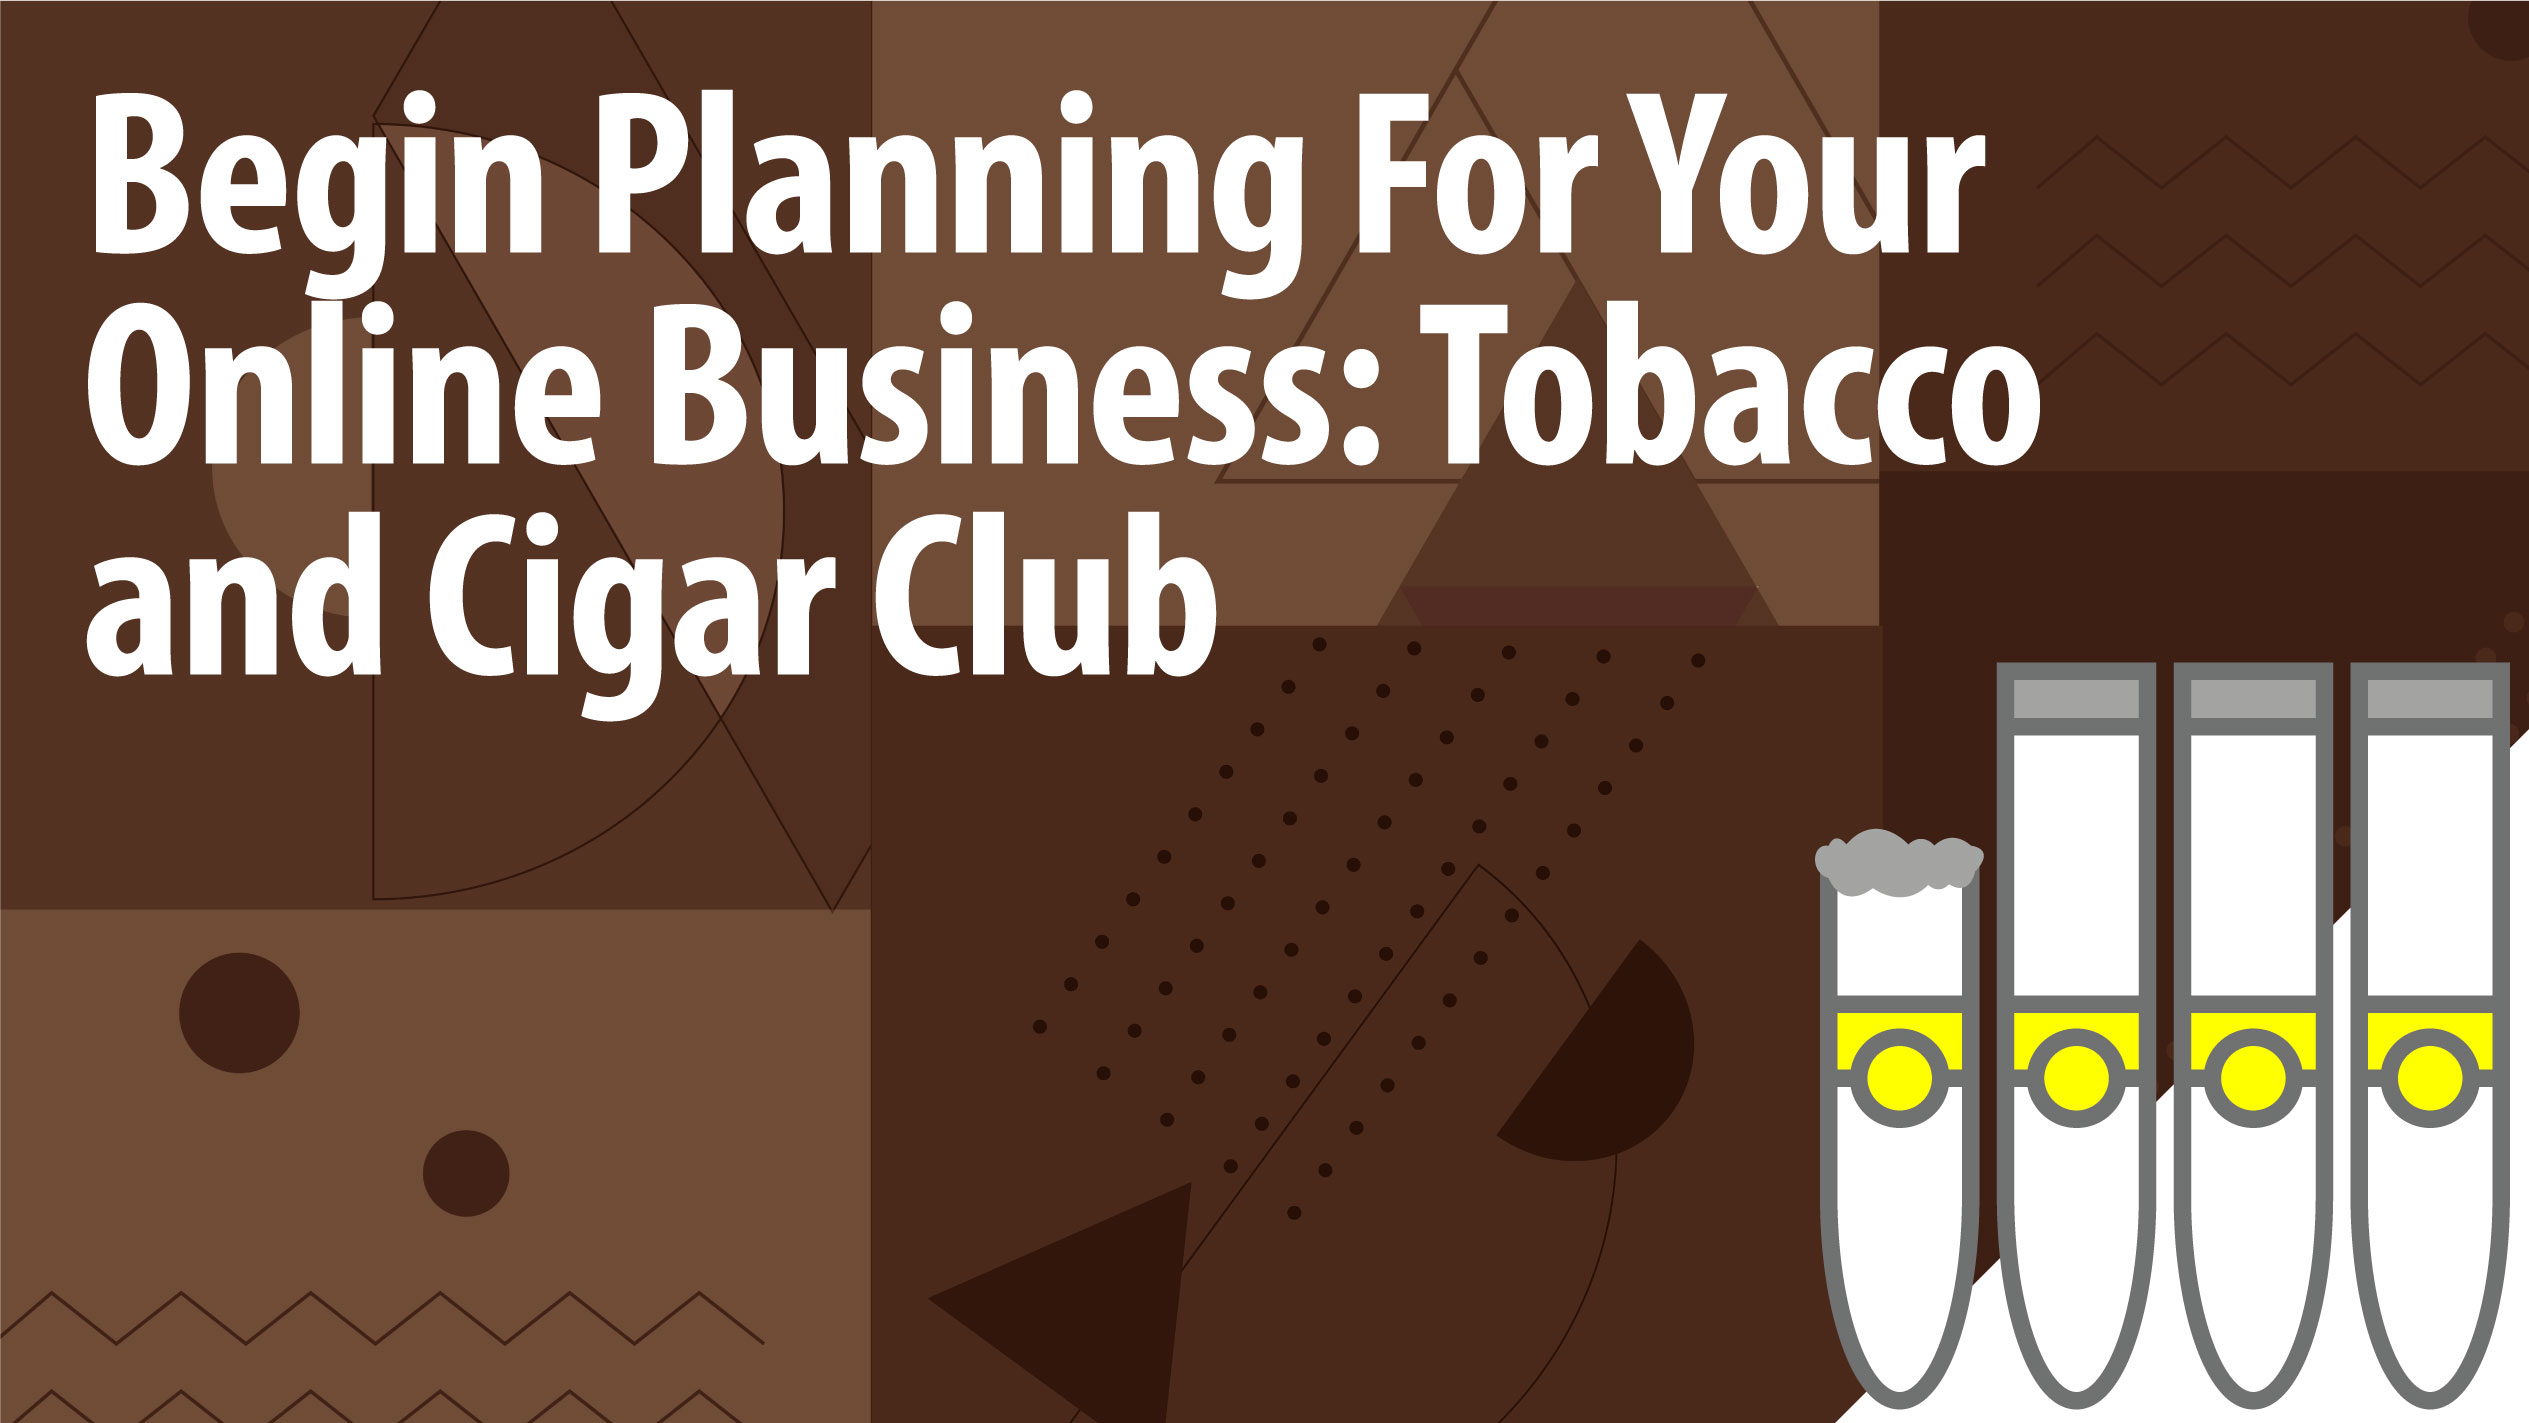 Begin Planning For Your Online Business: Tobacco and Cigar Club